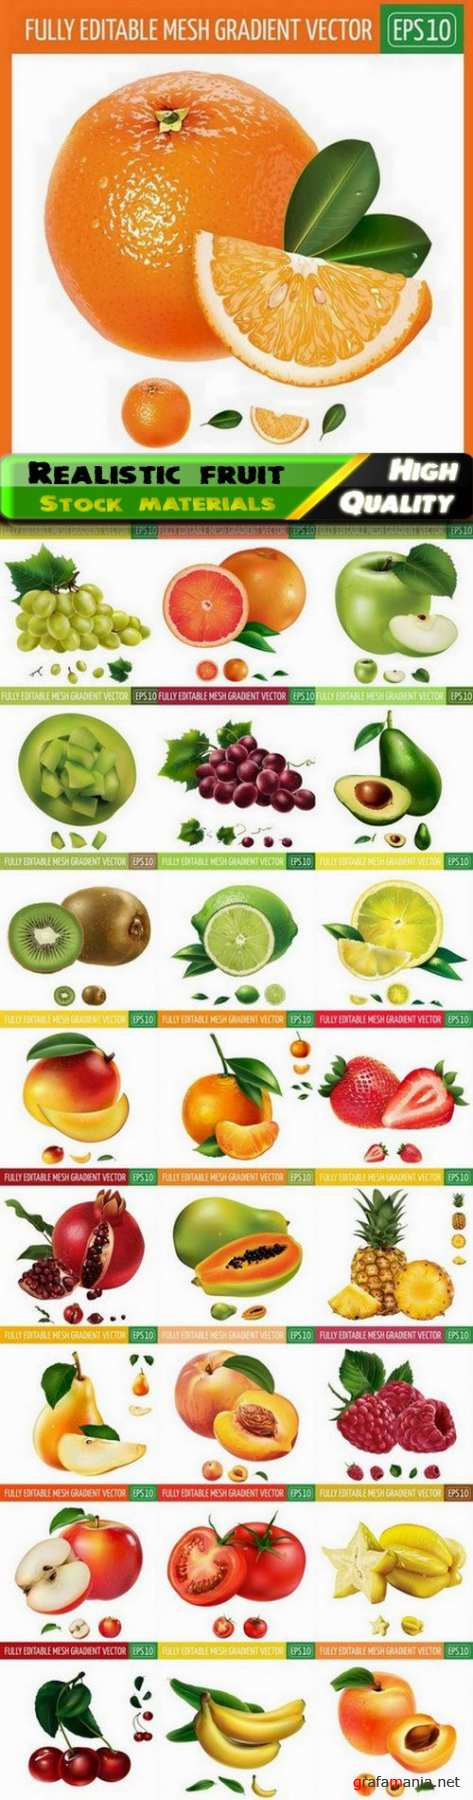 Illustration of realistic fruit and vegetable 2 - 25 Eps